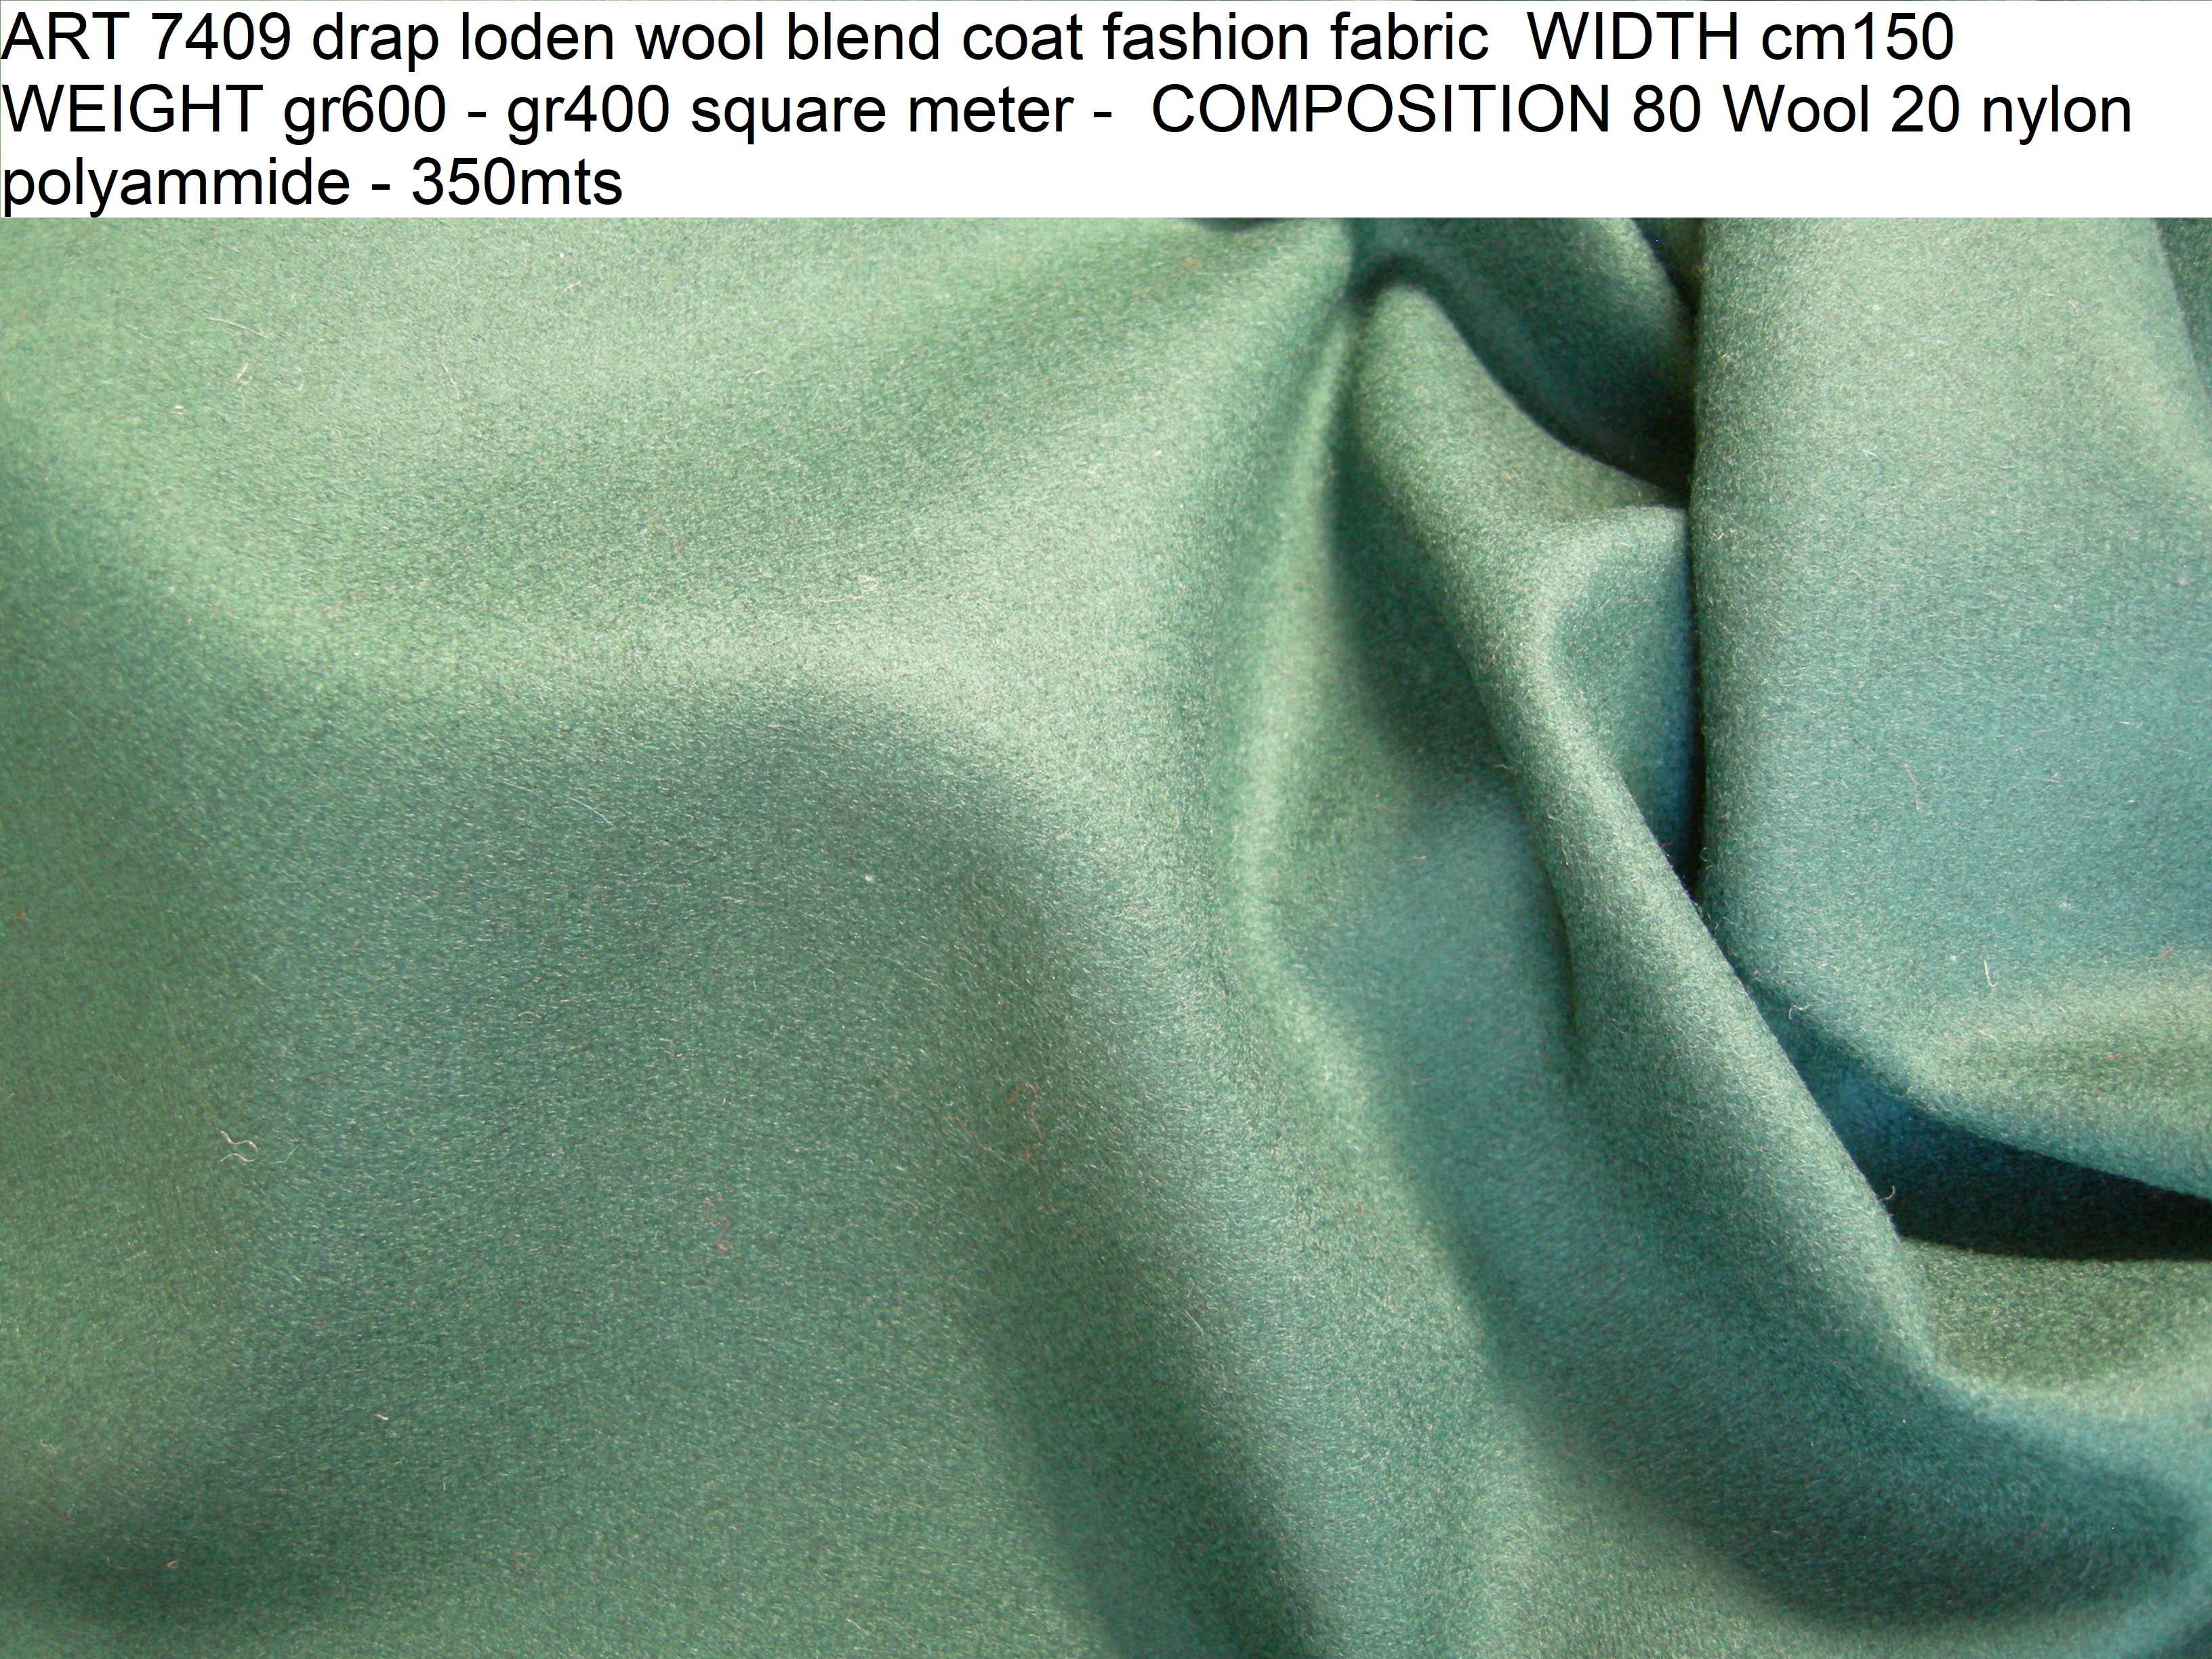 ART 7409 drap loden wool blend coat fashion fabric WIDTH cm150 WEIGHT gr600 - gr400 square meter - COMPOSITION 80 Wool 20 nylon polyammide - 350mts